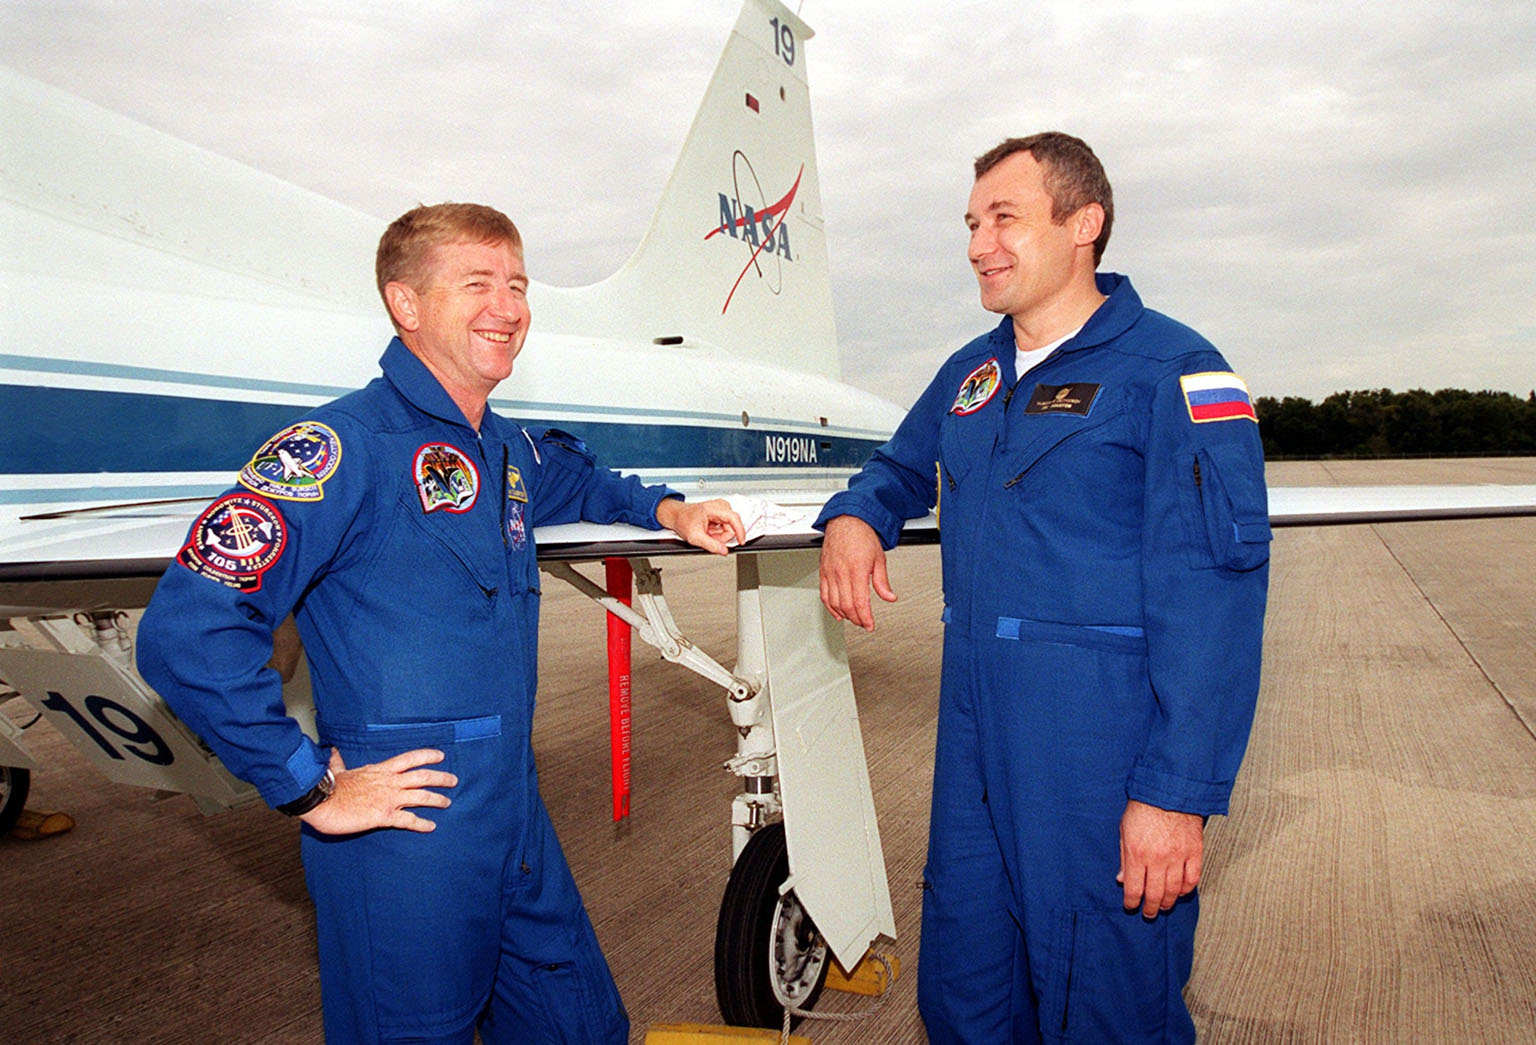 KENNEDY SPACE CENTER, Fla. -- Expedition Three crew members Commander Frank Culbertson (left) and cosmonaut Vladimir Dezhurov (right) wait by a T-38 jet for their morning training flights. The Expedition Three and STS-105 crews are preparing for launch on Aug. 9. On mission STS-105, Discovery will be transporting the Expedition Three crew and several payloads and scientific experiments to the Space Station. The Early Ammonia Servicer (EAS) tank, which contains spare ammonia for the Station?s cooling system and will support the thermal control subsystems until a permanent system is activated, will be attached to the Station during two spacewalks. The three-member Expedition Two crew will be returning to Earth aboard Discovery after a five-month stay on the Station